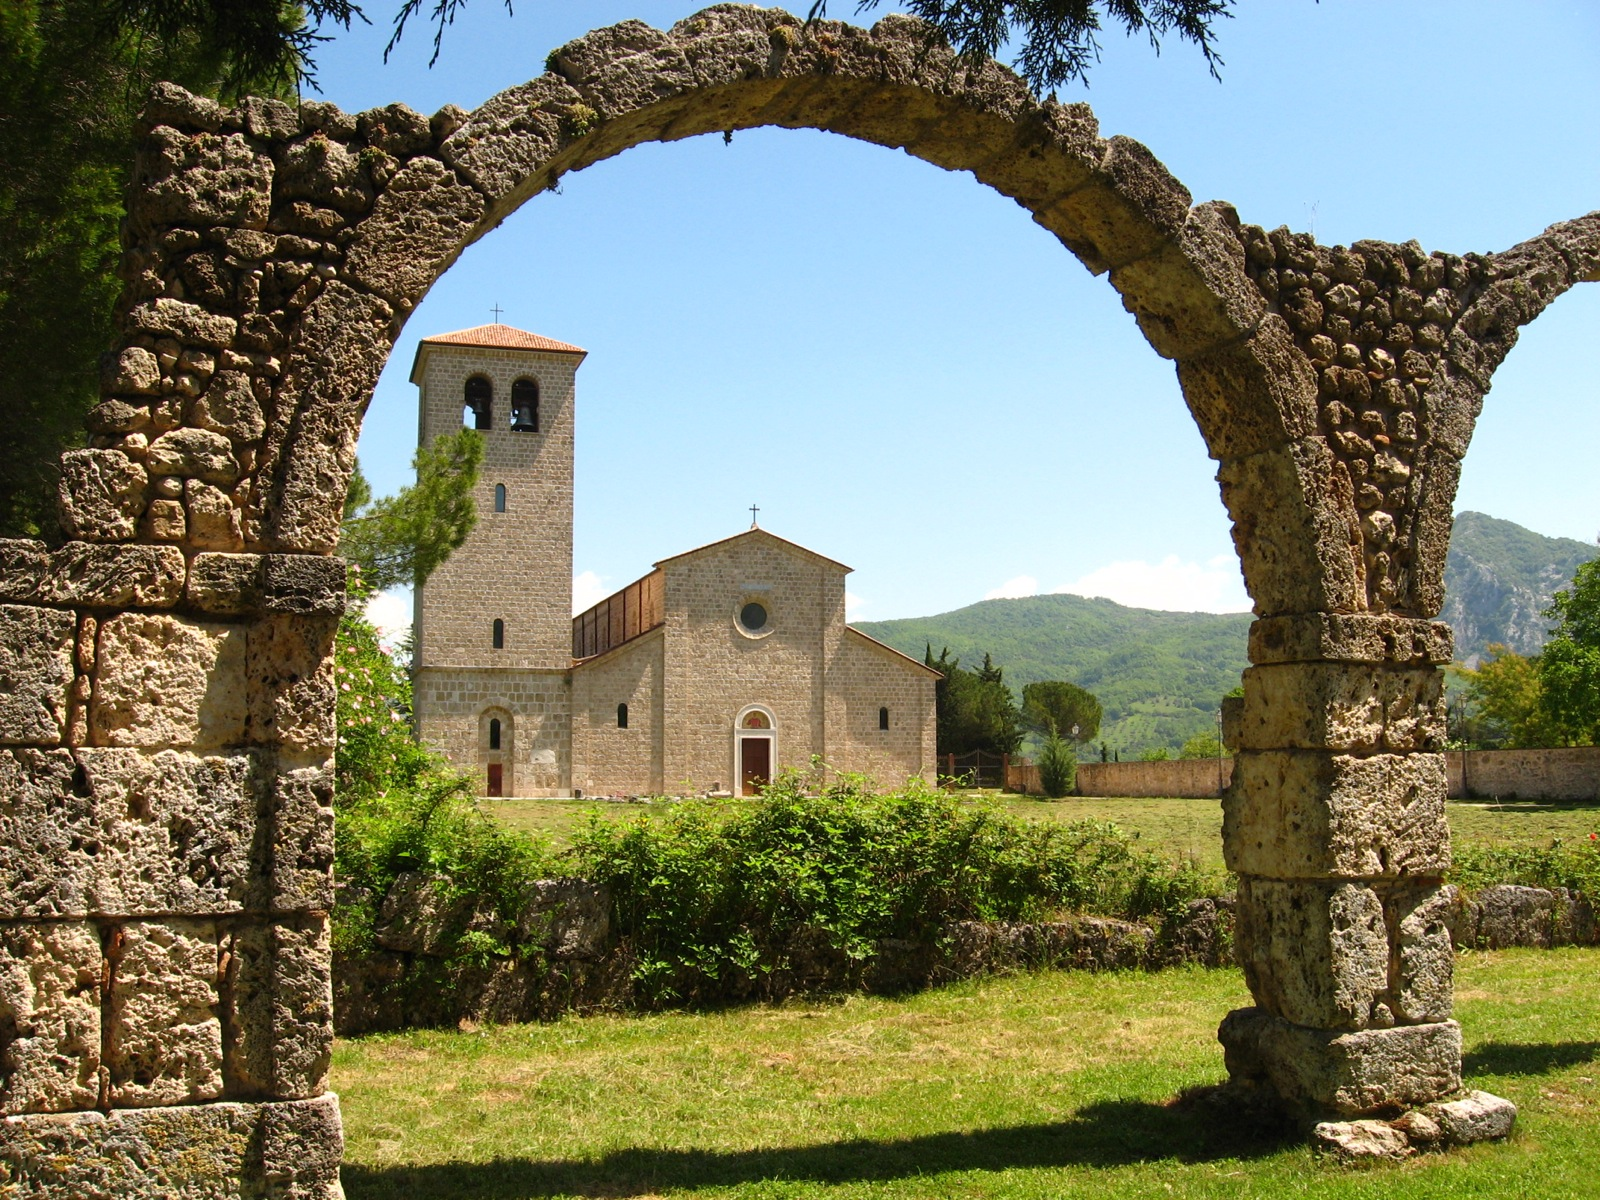 By Bryan (Abbazia de Vincenzo) [CC BY 2.0 (http://creativecommons.org/licenses/by/2.0)], via Wikimedia Commons